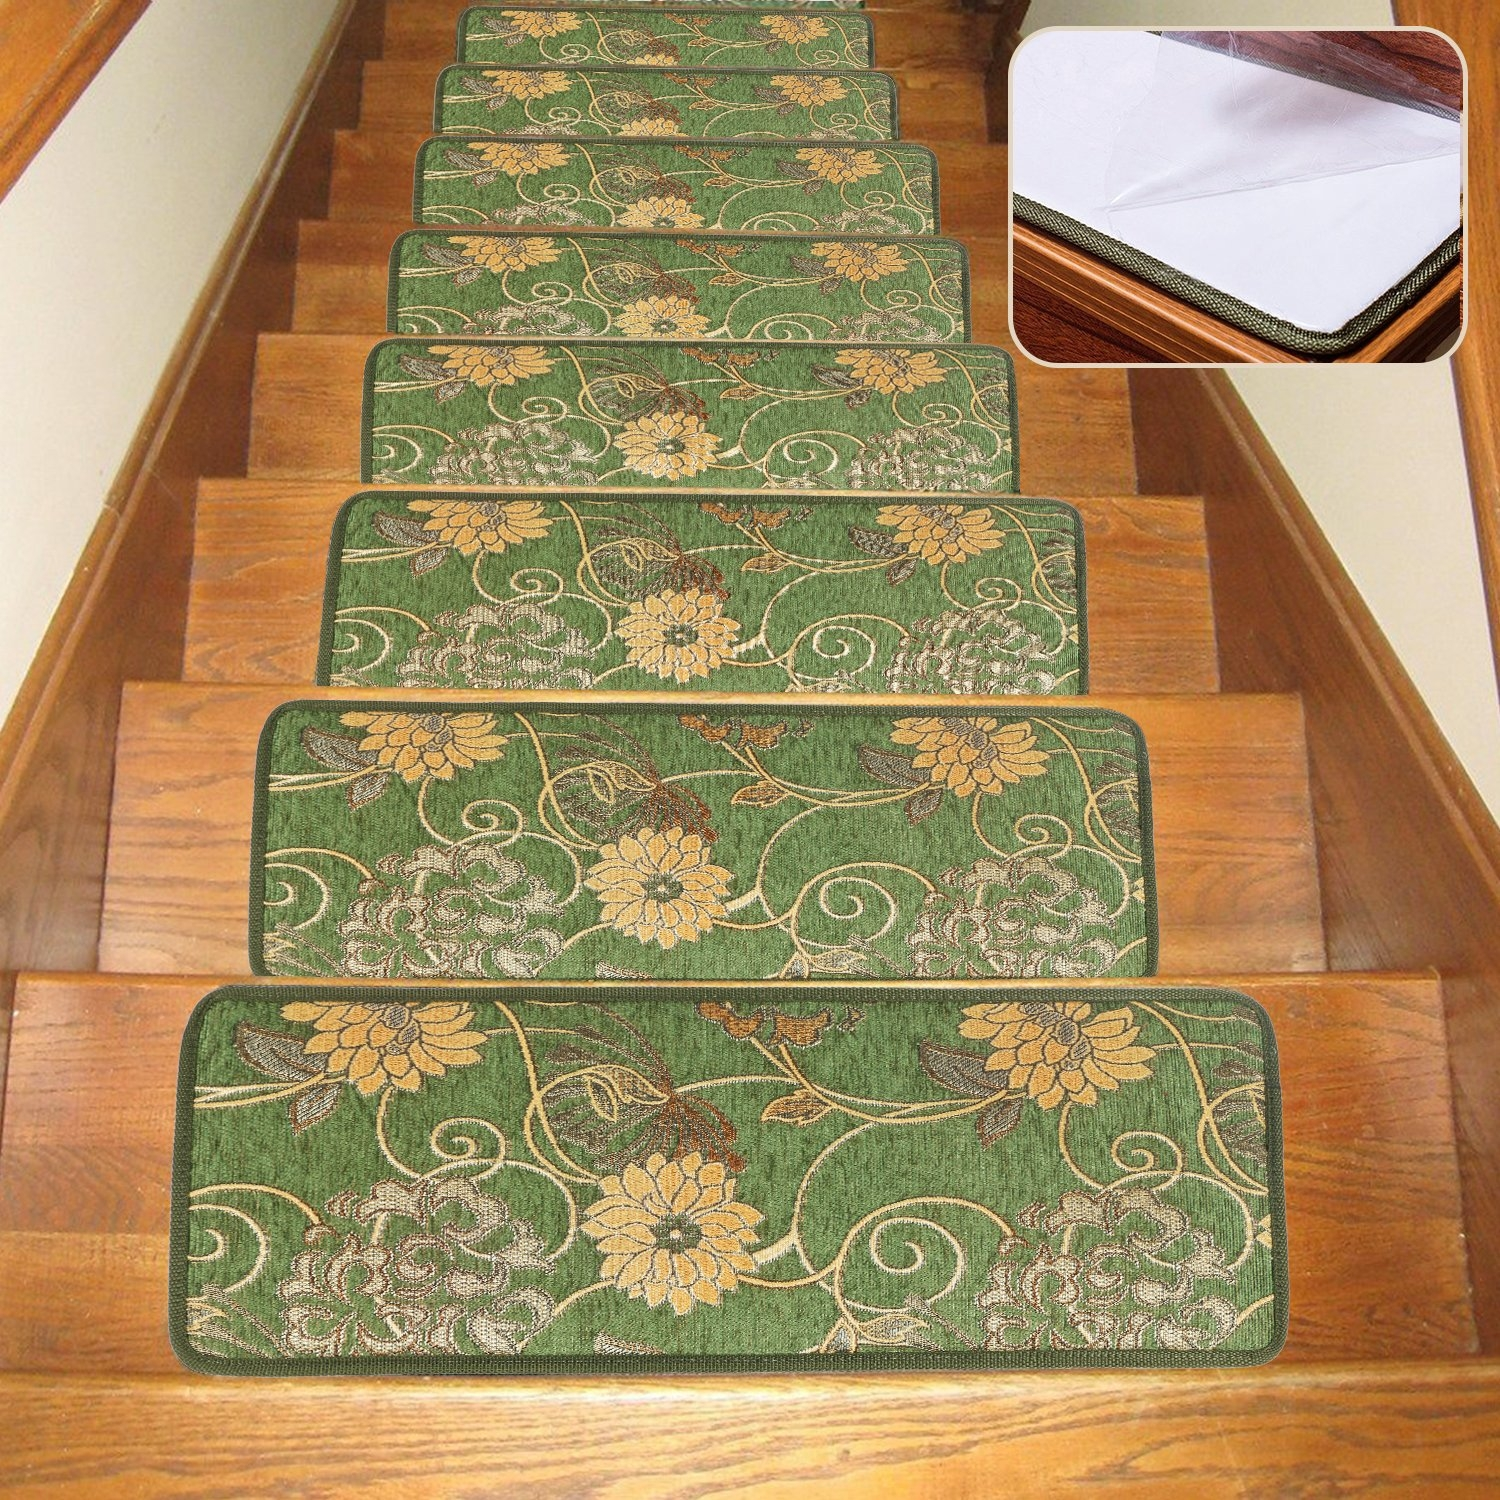 Carpet Skid Resistant Stair Tread Non Slip Indoor Stair Tread Rug Inside Stair Tread Rug Covers (#1 of 20)